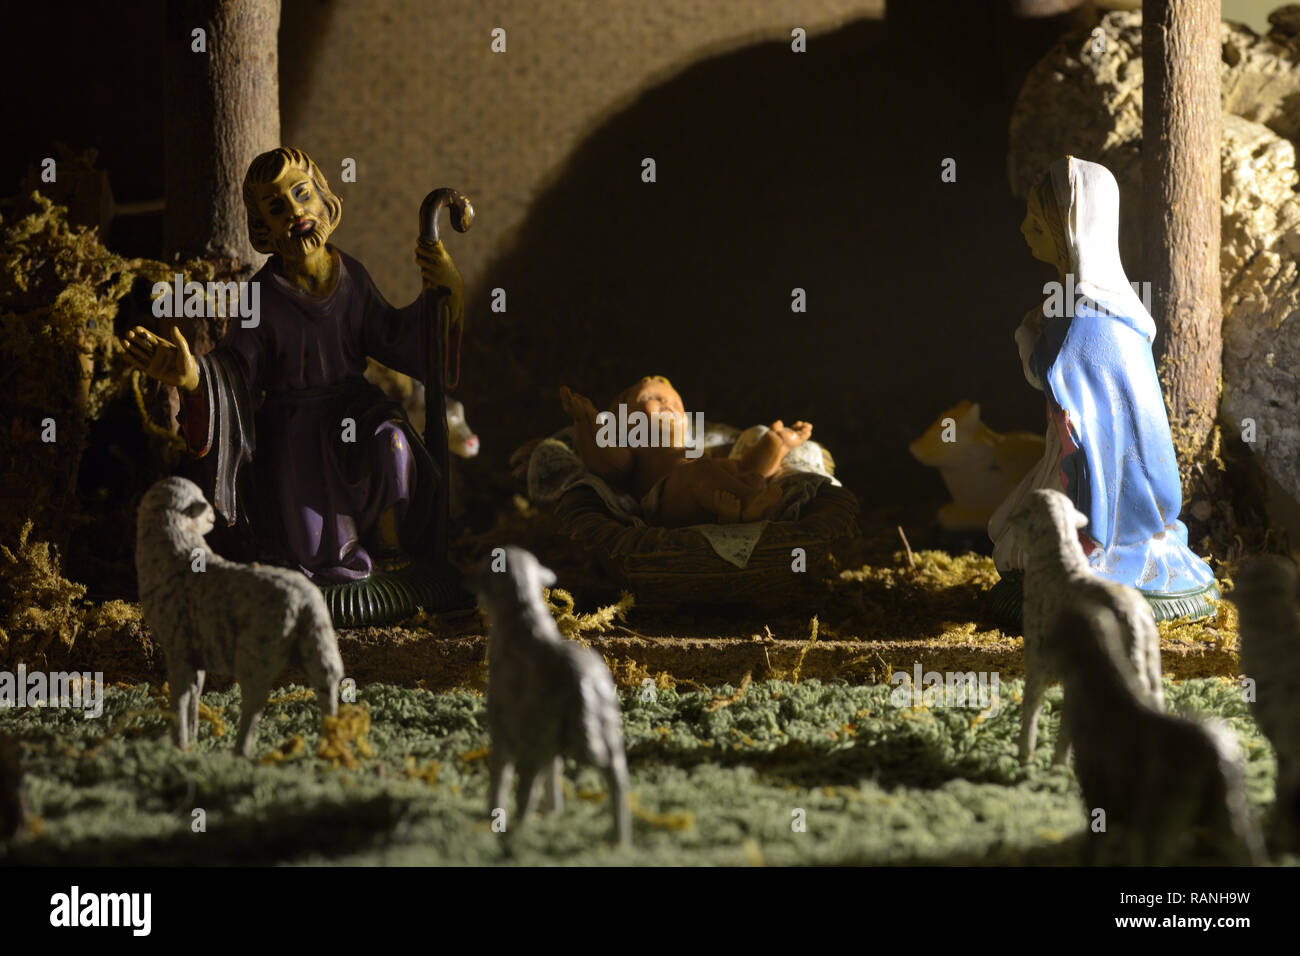 Traditional nativity scene with statues of the Holy Family. Nativity Scene with statues of Joseph, Mary and the little Jesus inside the hut. Stock Photo